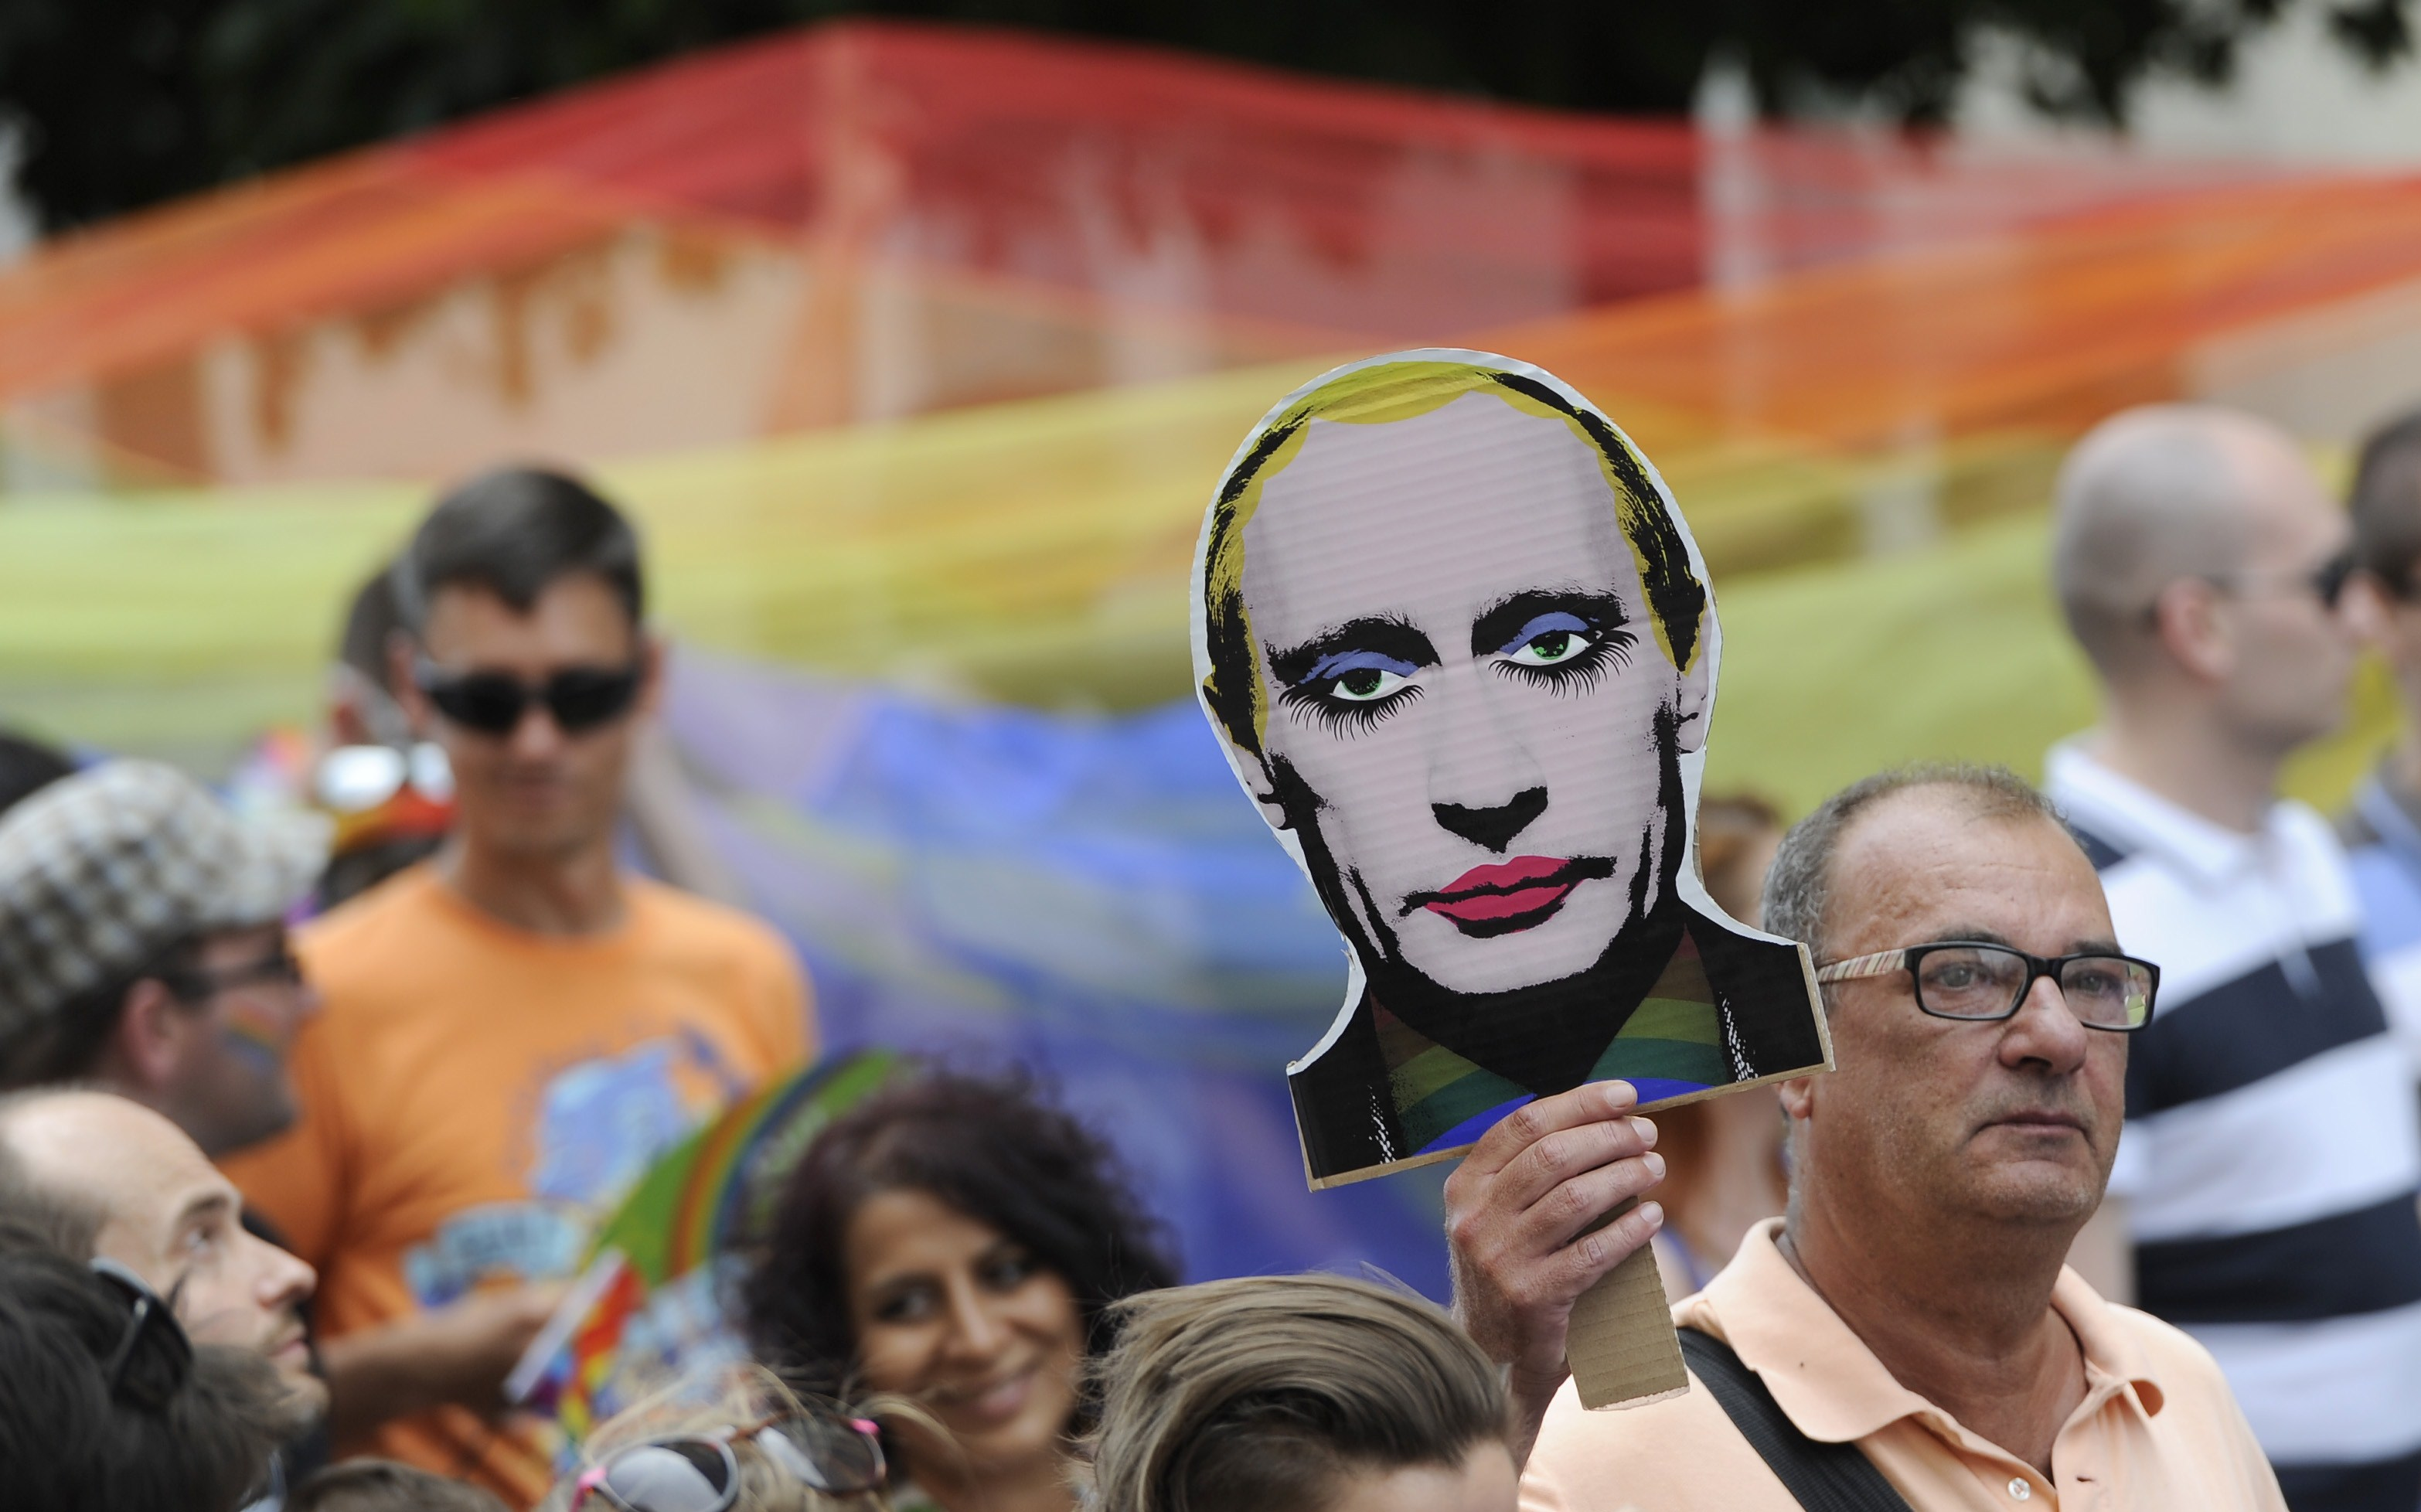 A man holds up a picture of an painted Russian President Vladimir Putin during the LGBT Pride Parade in Bratislava, Slovakia on June 28, 2014.